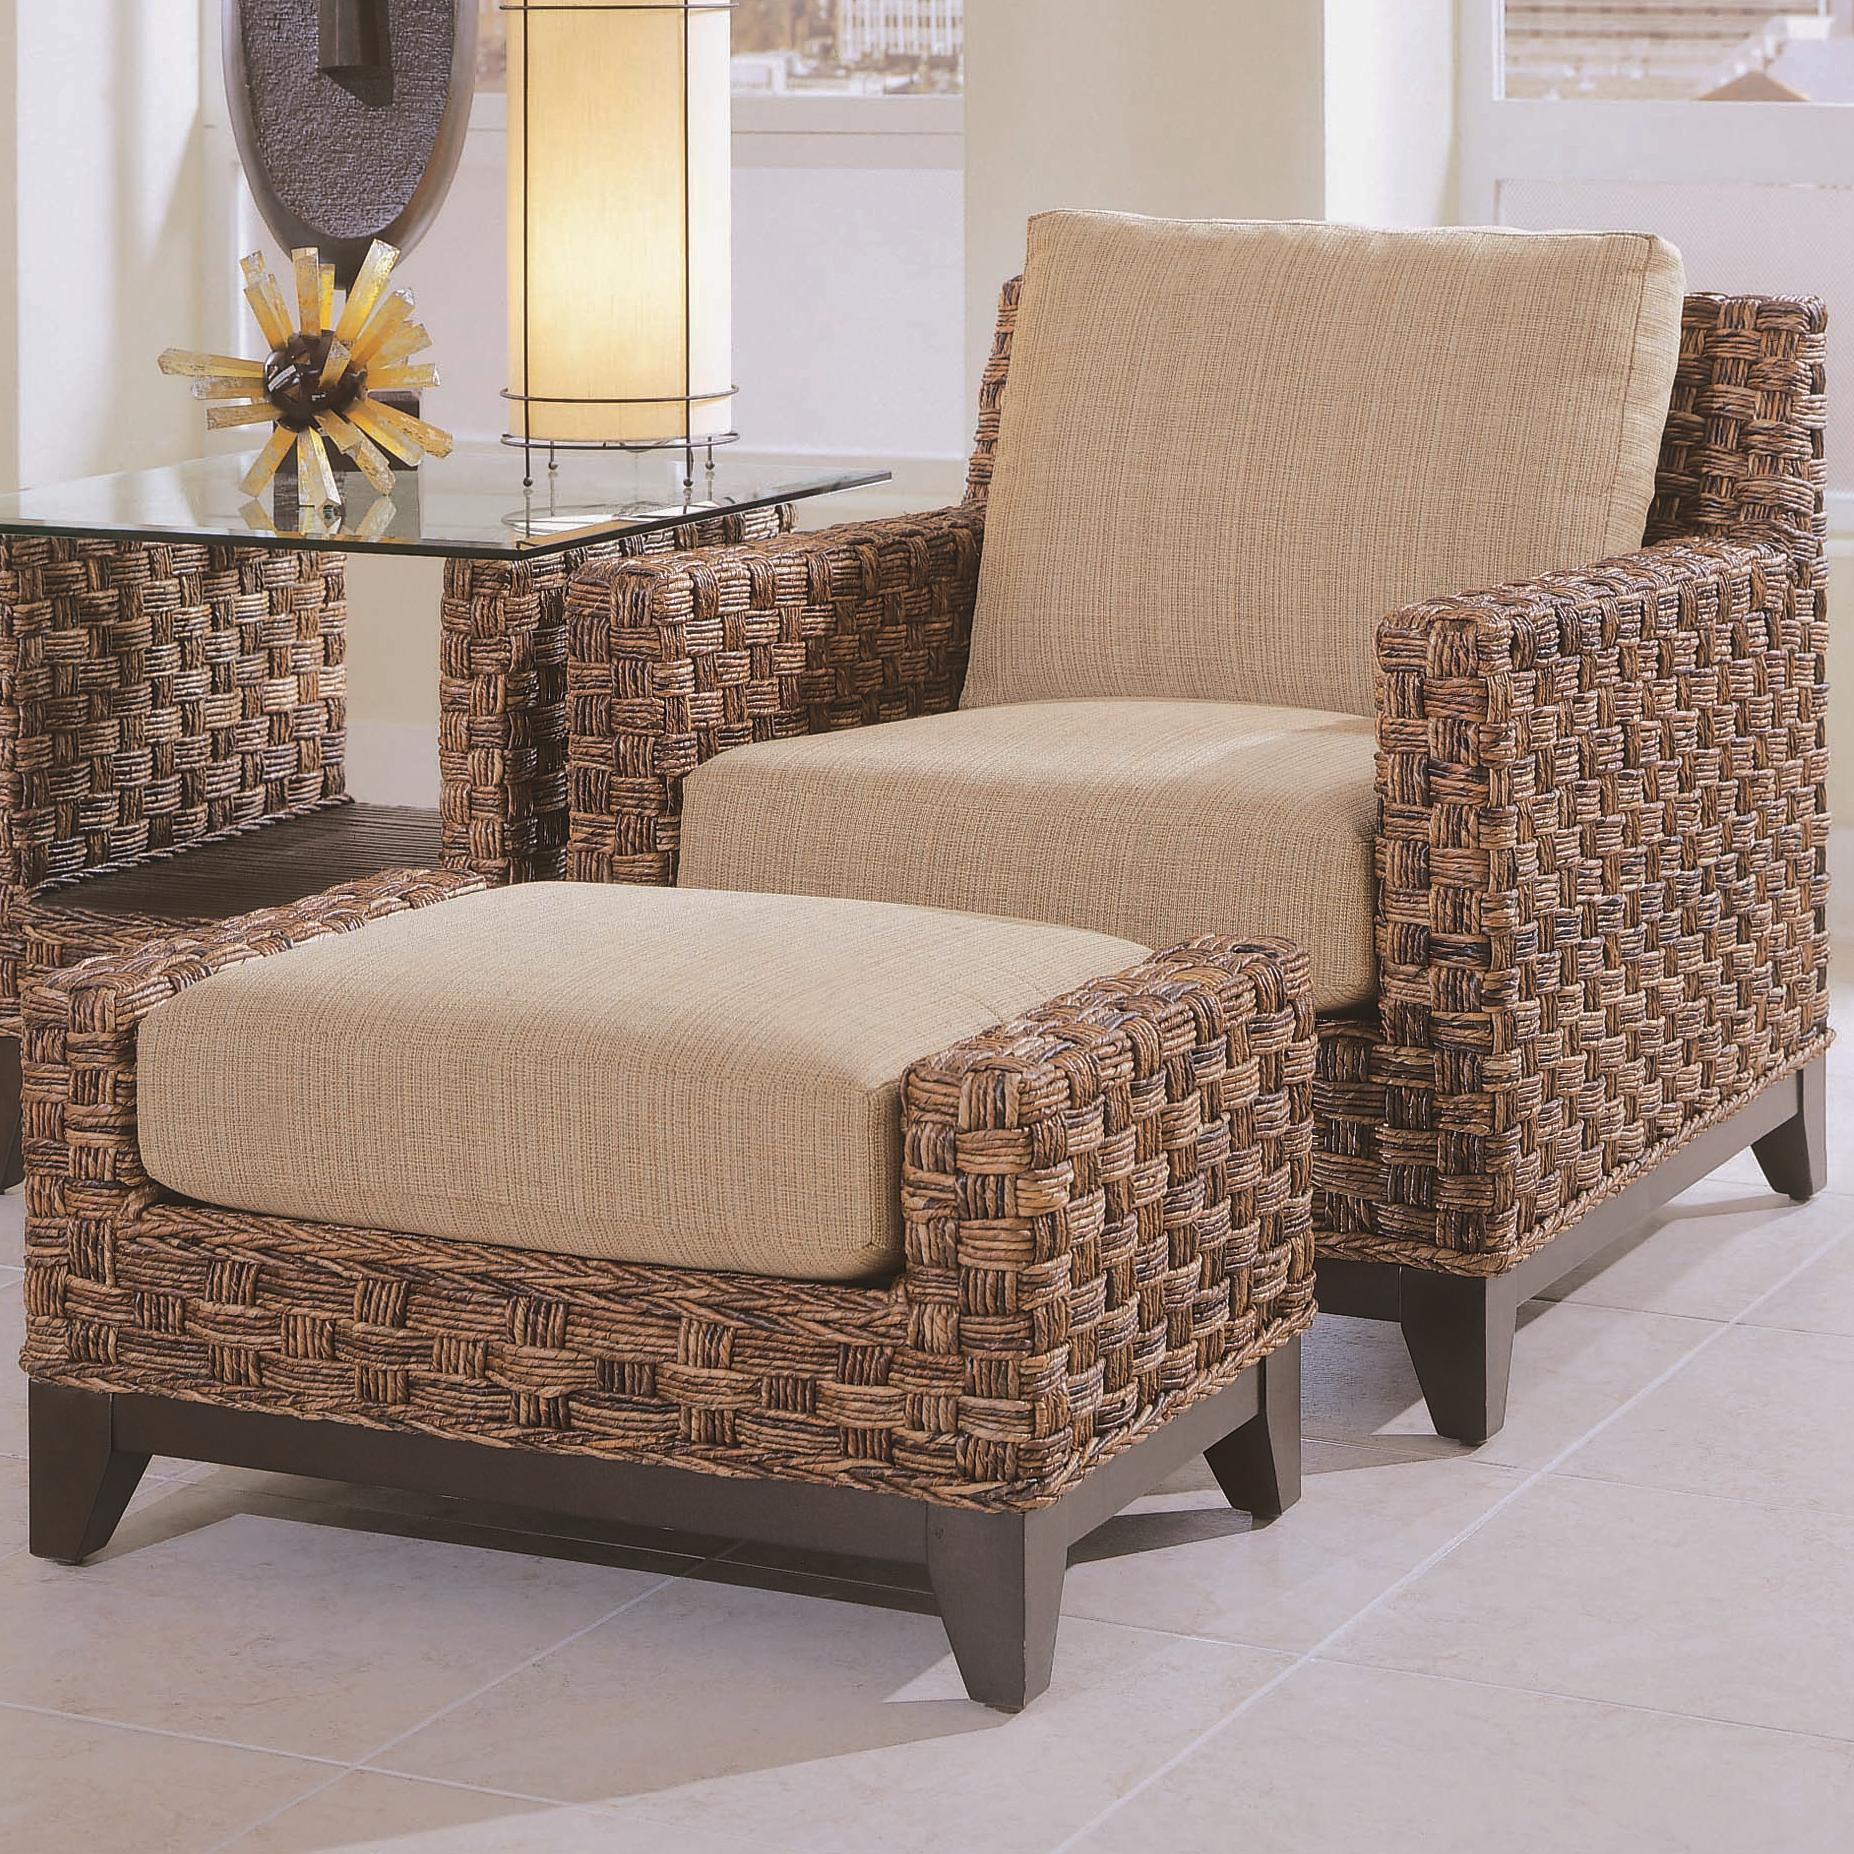 Braxton Culler Tribeca 2960 Modern Wicker Chair And